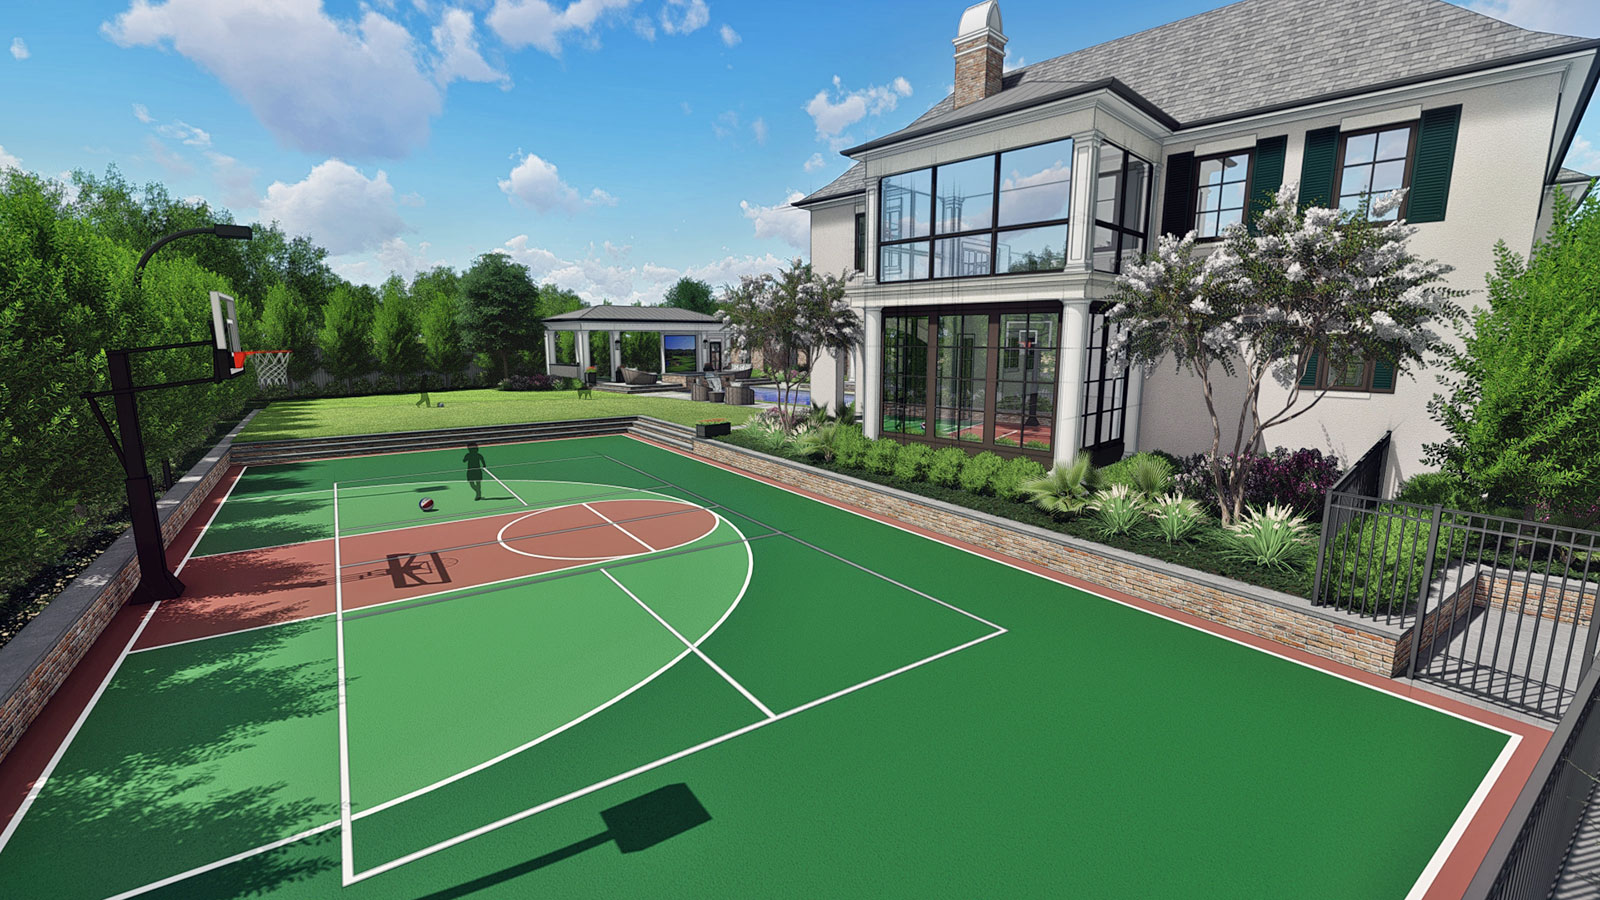 SPORT COURT VIEW TO HOUSE